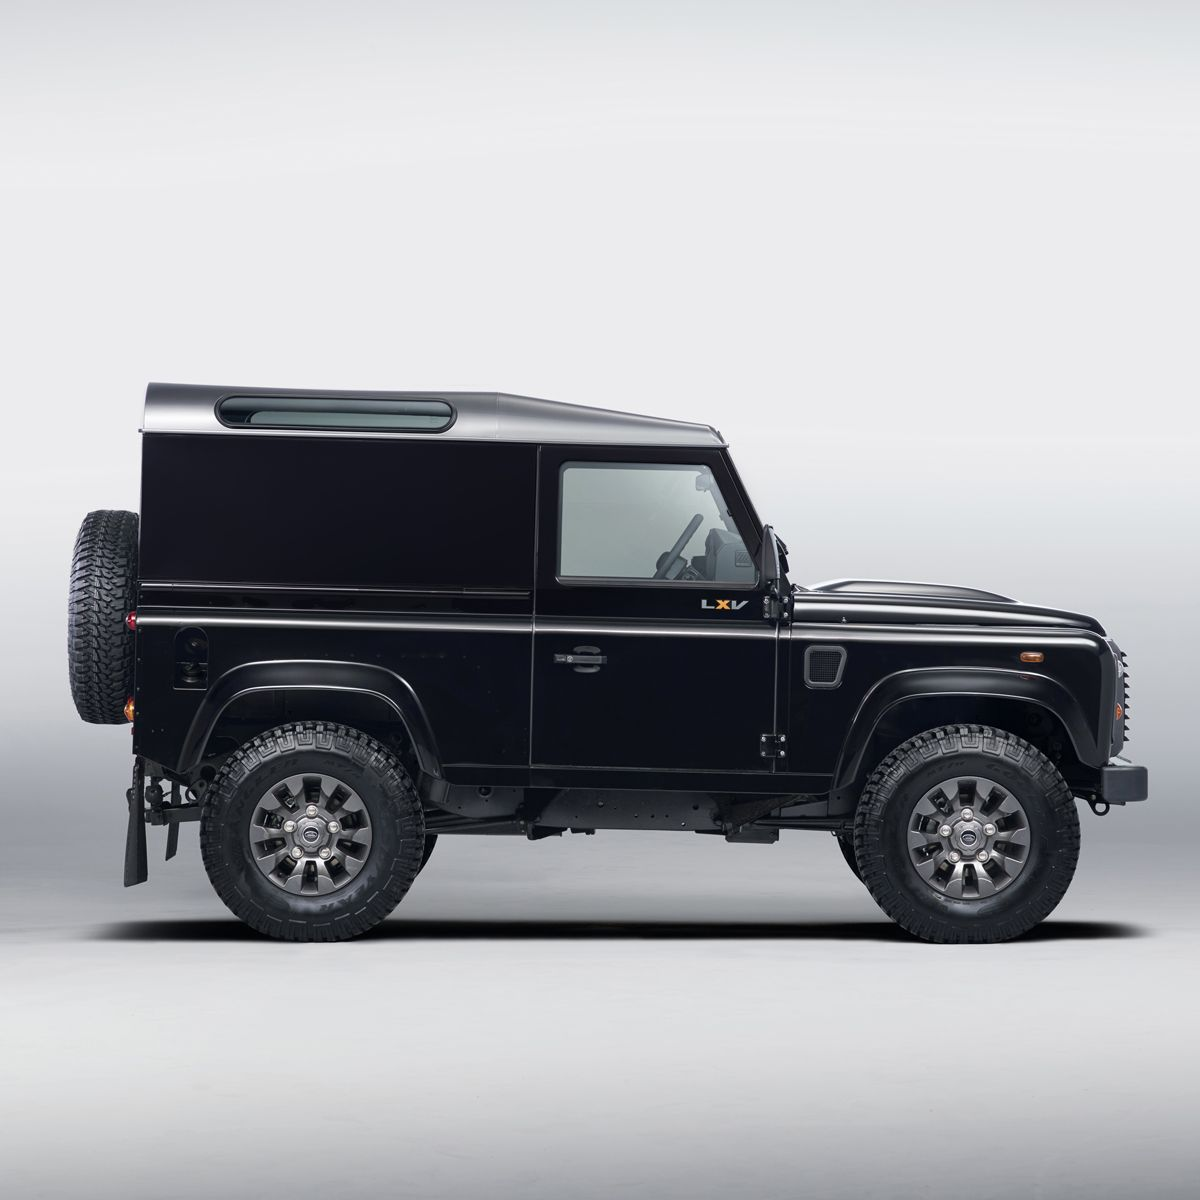 The Drives Why We Love Land Rovers On Or Off Road Rough And Ready Or Refined This Motoring Legend Has Seen And Done I Land Rover Car Wheels Rims Car Wheels